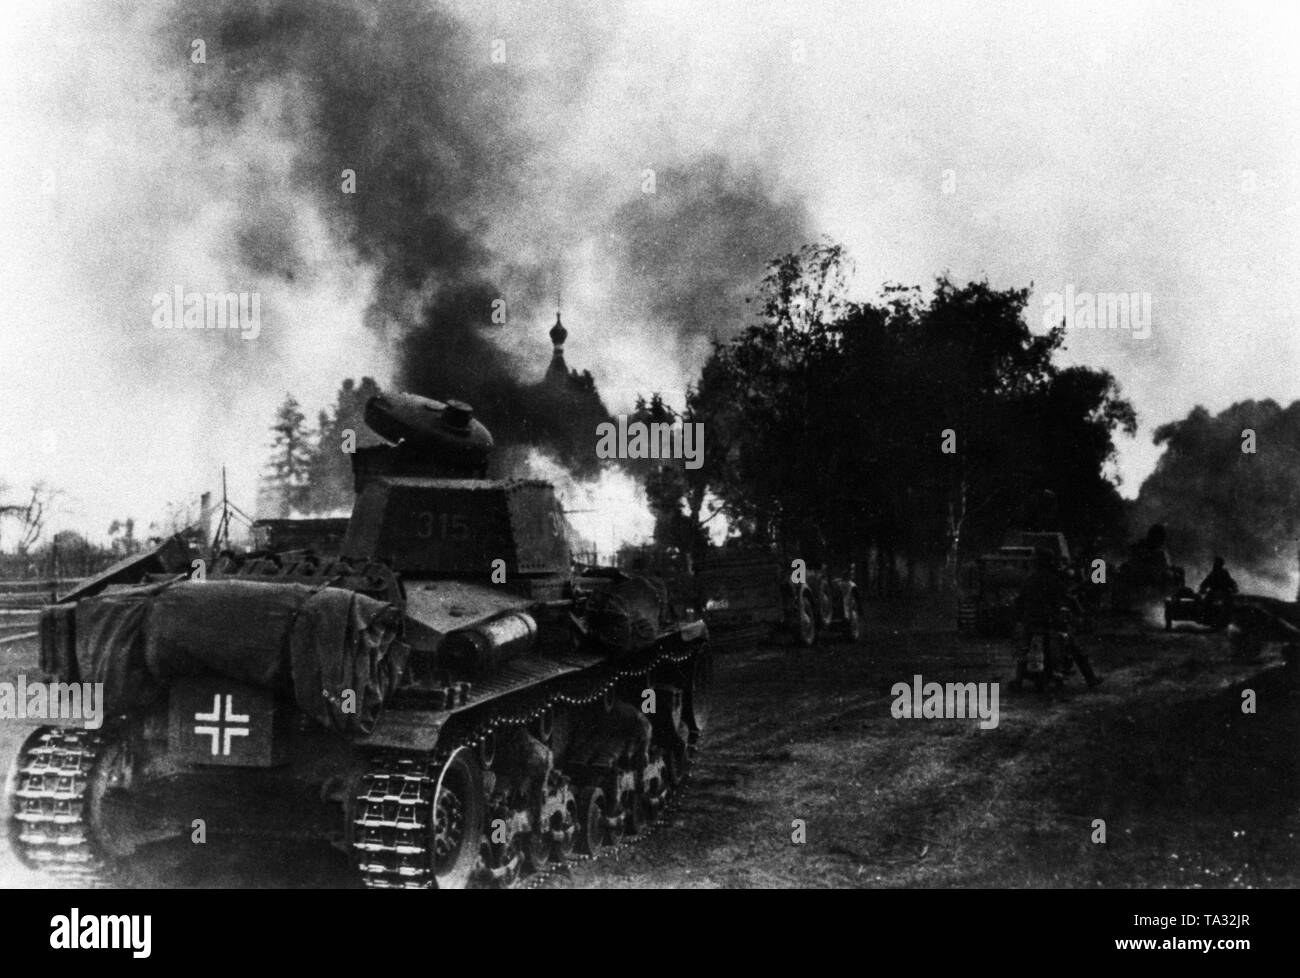 Panzer 35 (t) of the 6th Panzer Division on the advance through a burning village on the eastern front. Area Army Group North. Stock Photo